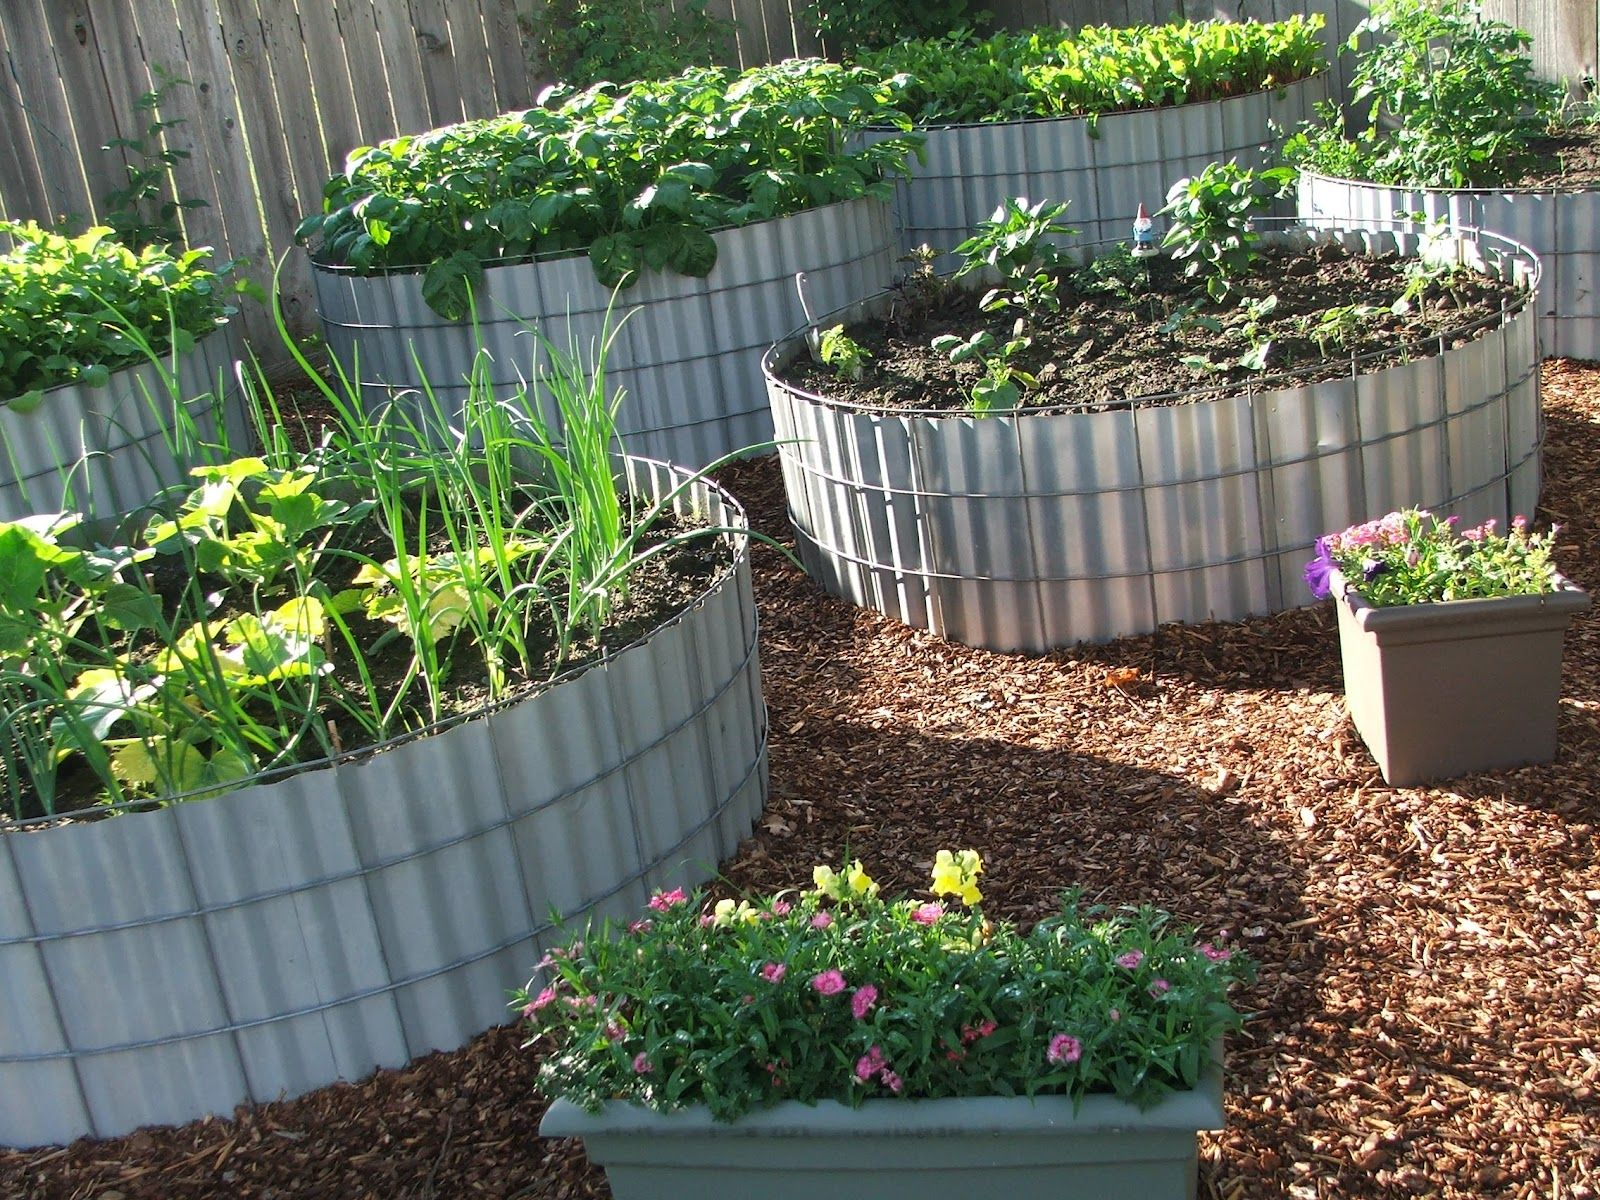 raised garden bed design ideas raised garden bed ideas in home - Raised Garden Bed Design Ideas